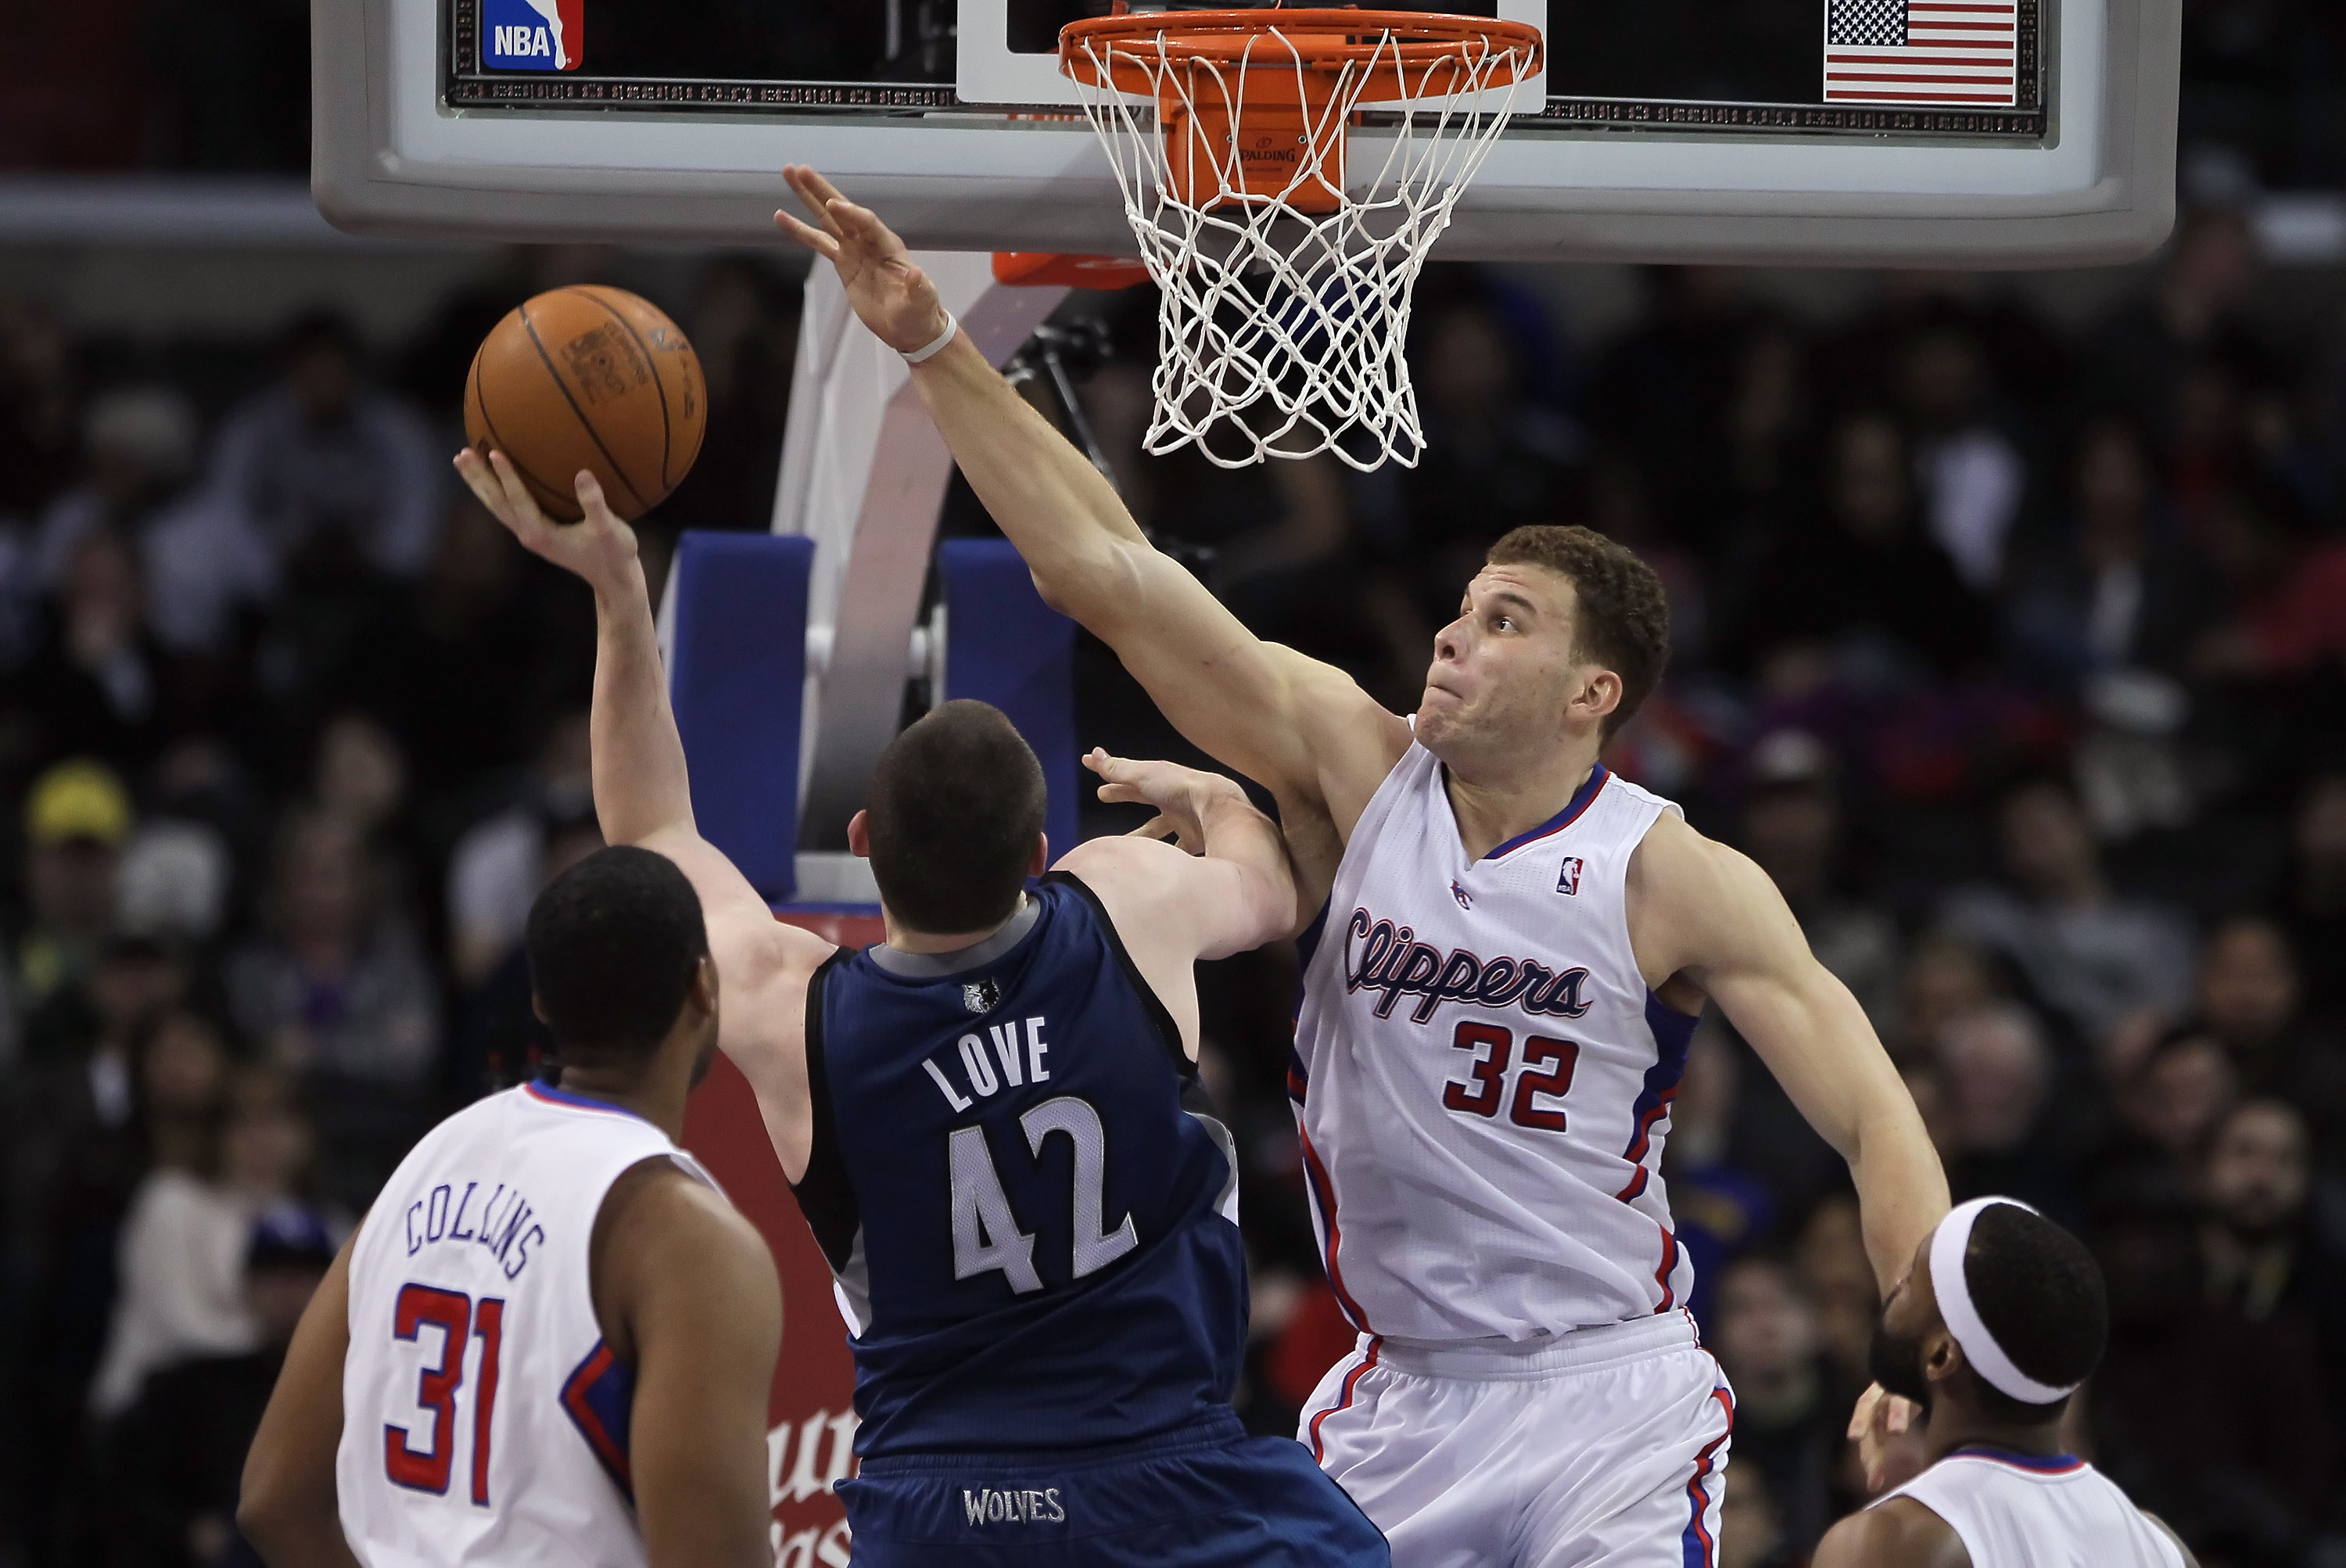 LOS ANGELES, CA - DECEMBER 20:  Blake Griffin #32 of the Los Angeles Clippers defends against Kevin Love #42 of the Minnesota Timberwolves during the second half at Staples Center on December 20, 2010 in Los Angeles, California. The Clippers defeated the